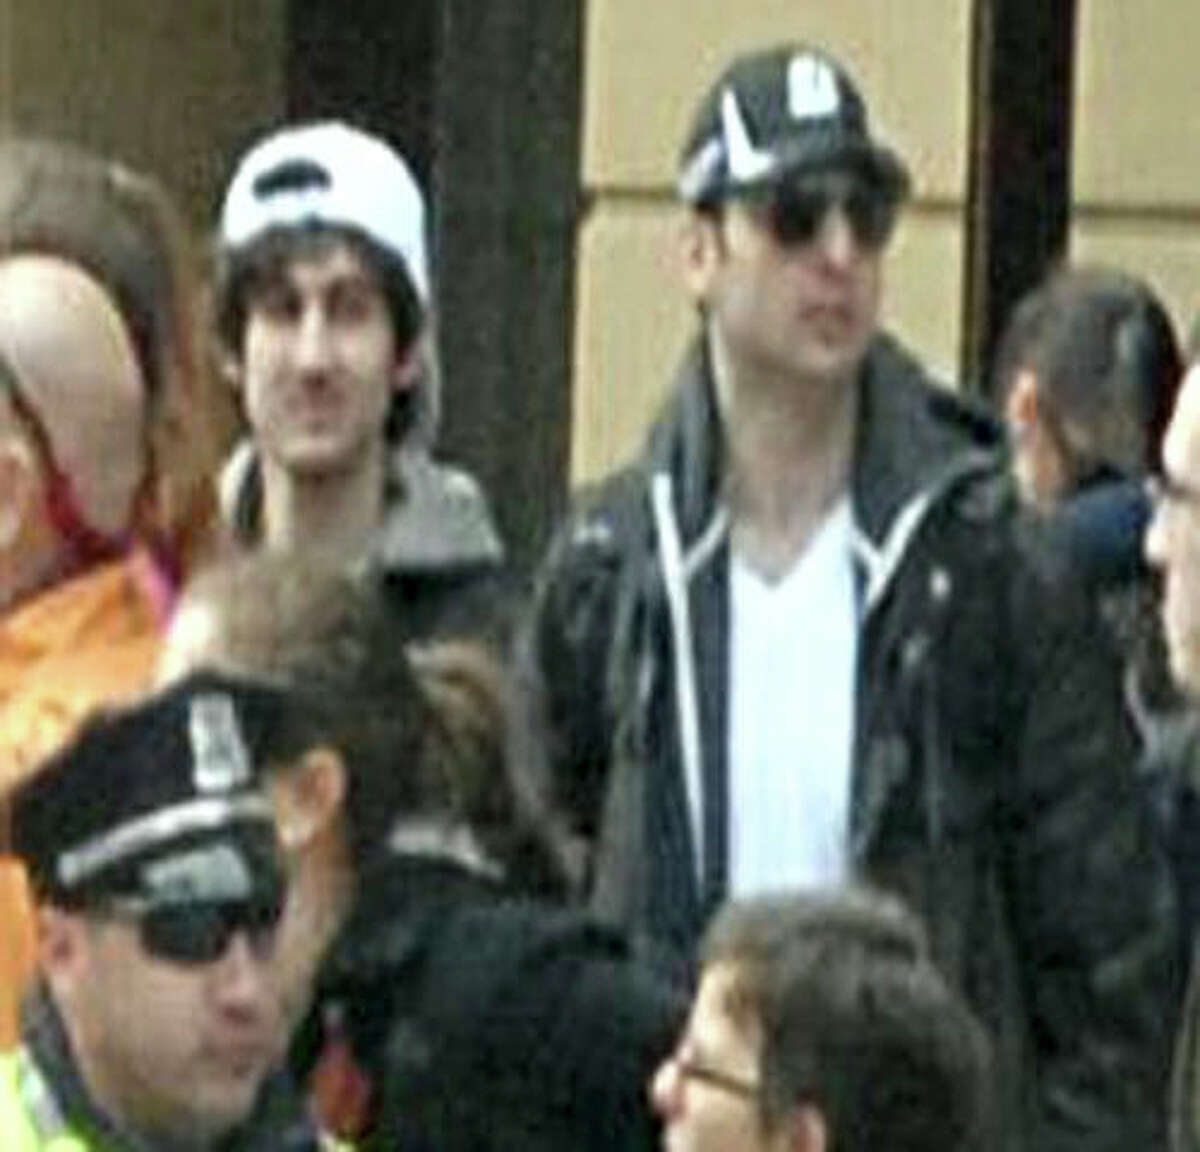 In an FBI handout photo, the two suspects in the Boston Marathon bombings walk together through the crowd during the marathon and before the blasts in Boston, April 15, 2013. Tamerlan Tsarnaev, a suspect in the blasts, was killed overnight in a standoff with police in Watertown, and a second suspect, Dzhokhar Tsarnaev, identified as his brother, was at large, a law enforcement official said. (Federal Bureau of Investigation via The New York Times) -- EDITORIAL USE ONLY --